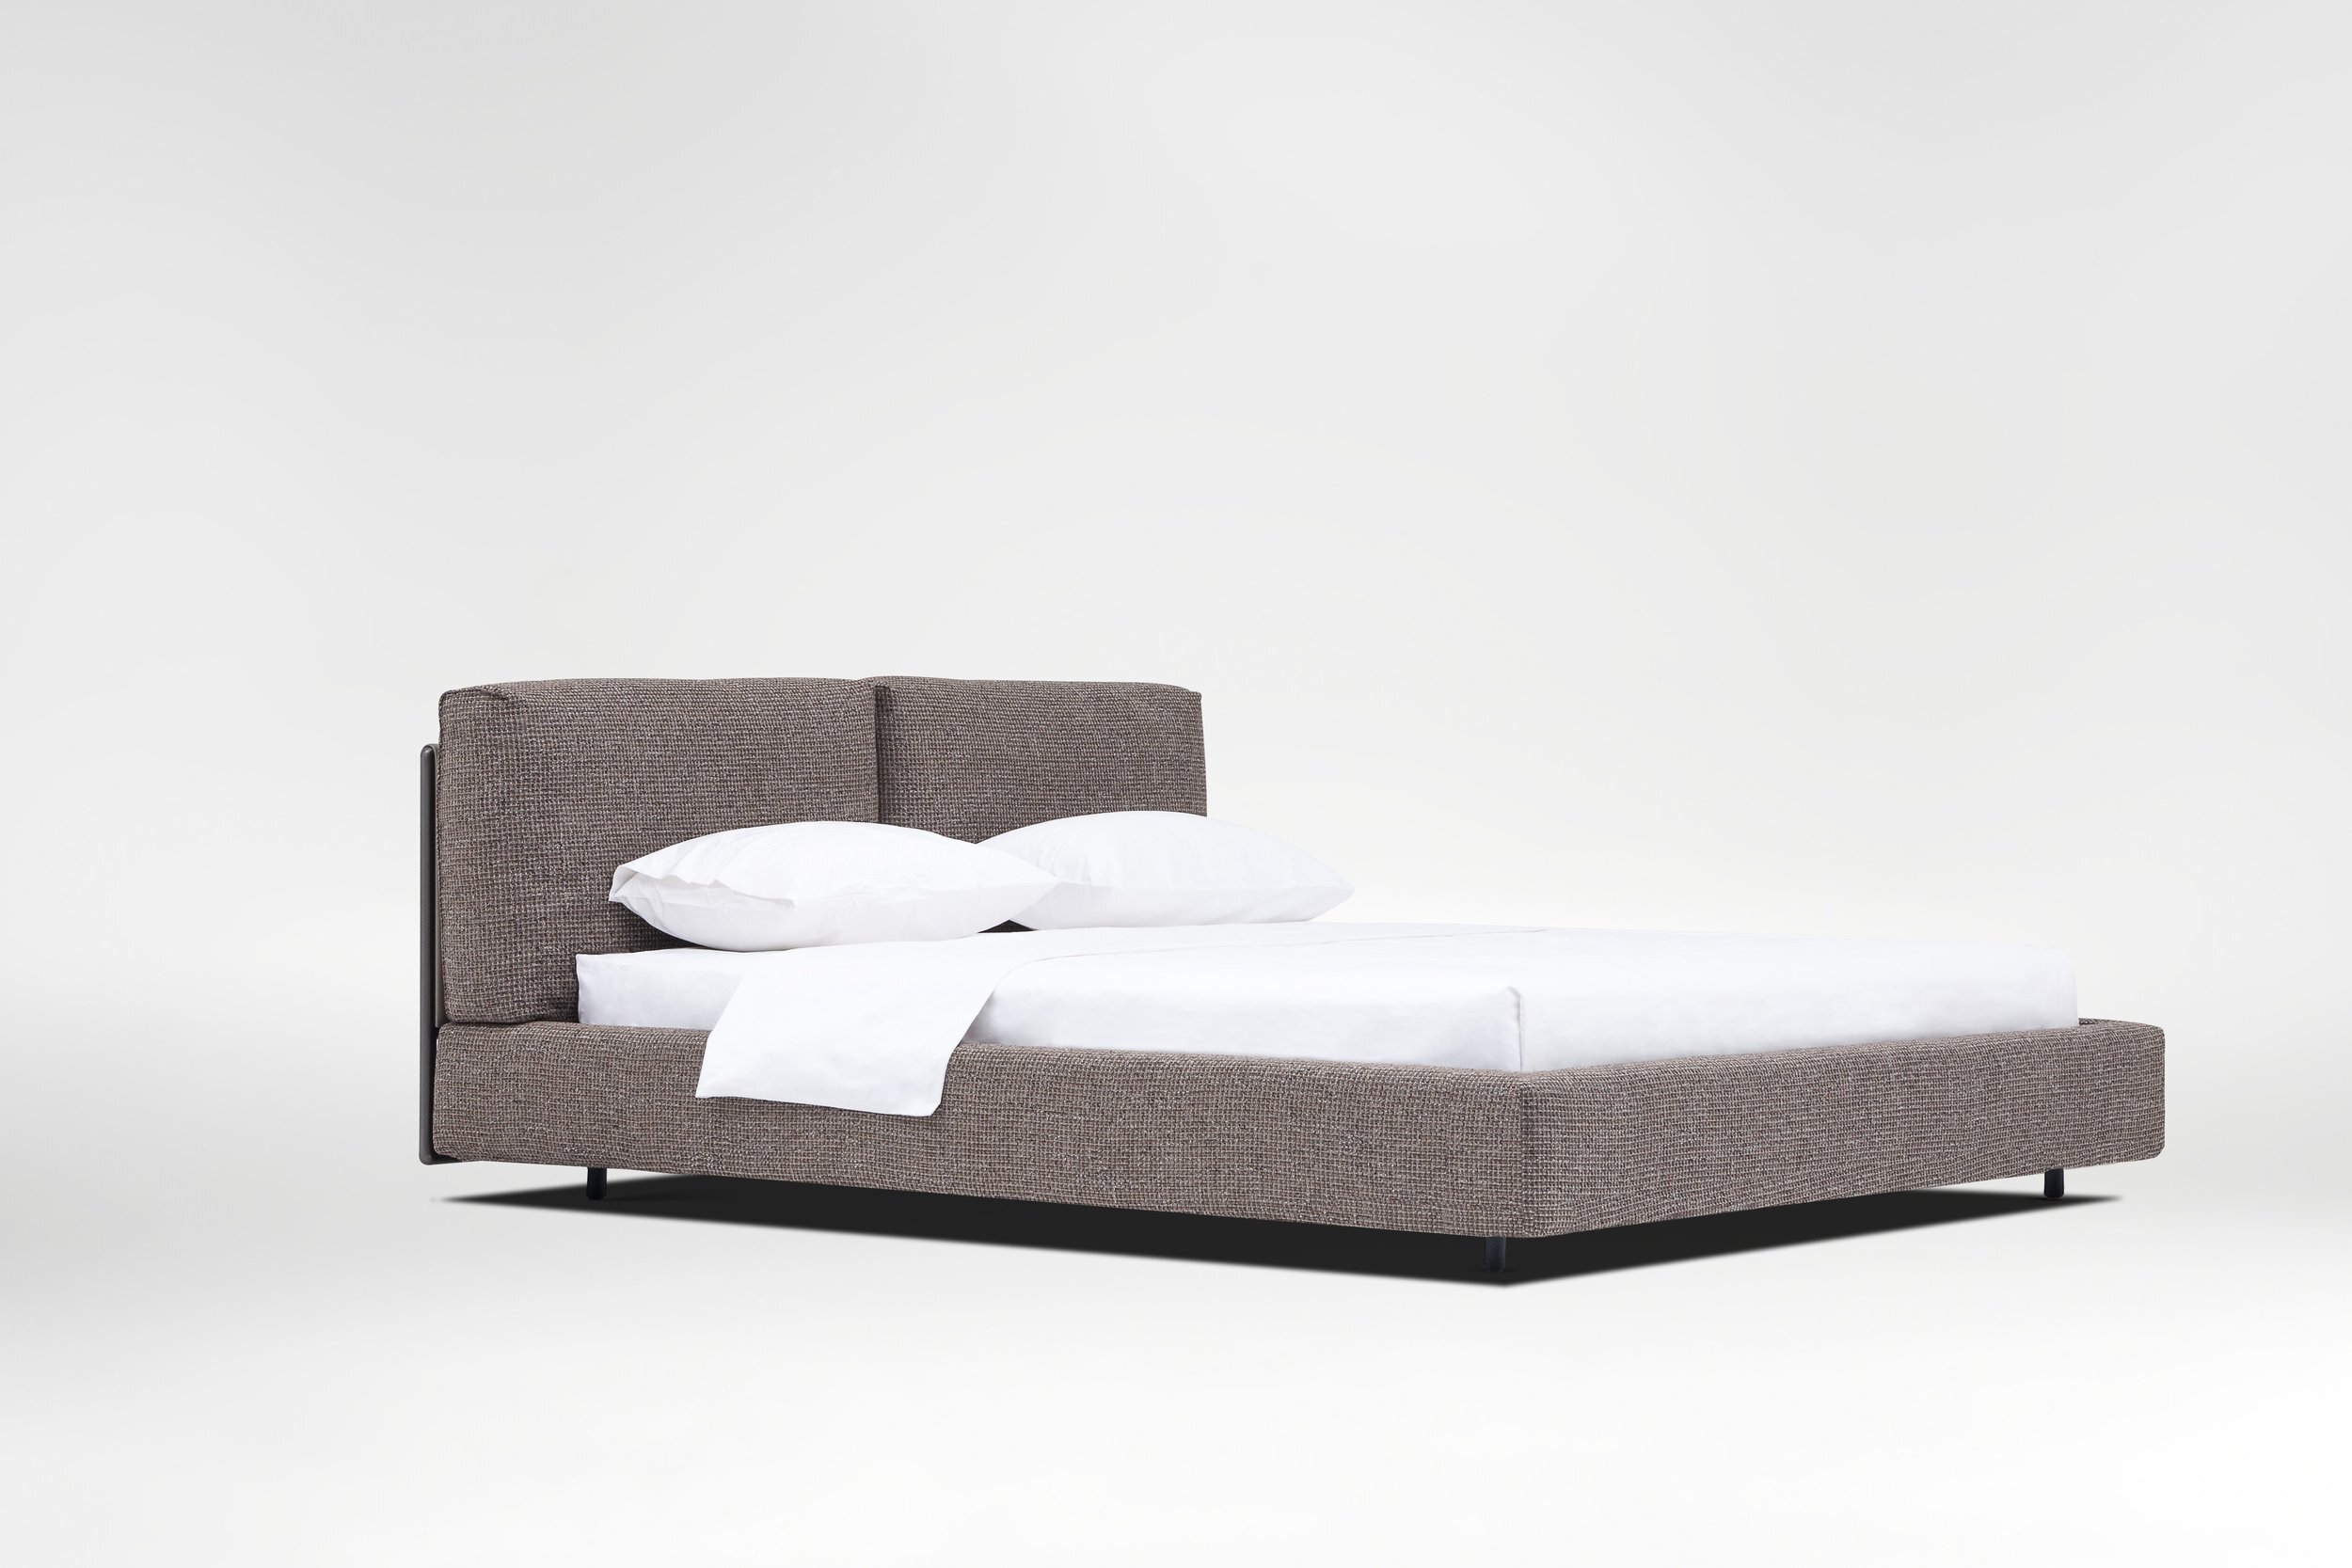 nature bed - Upright and too comfortable to resist, meet the Nature Bed.